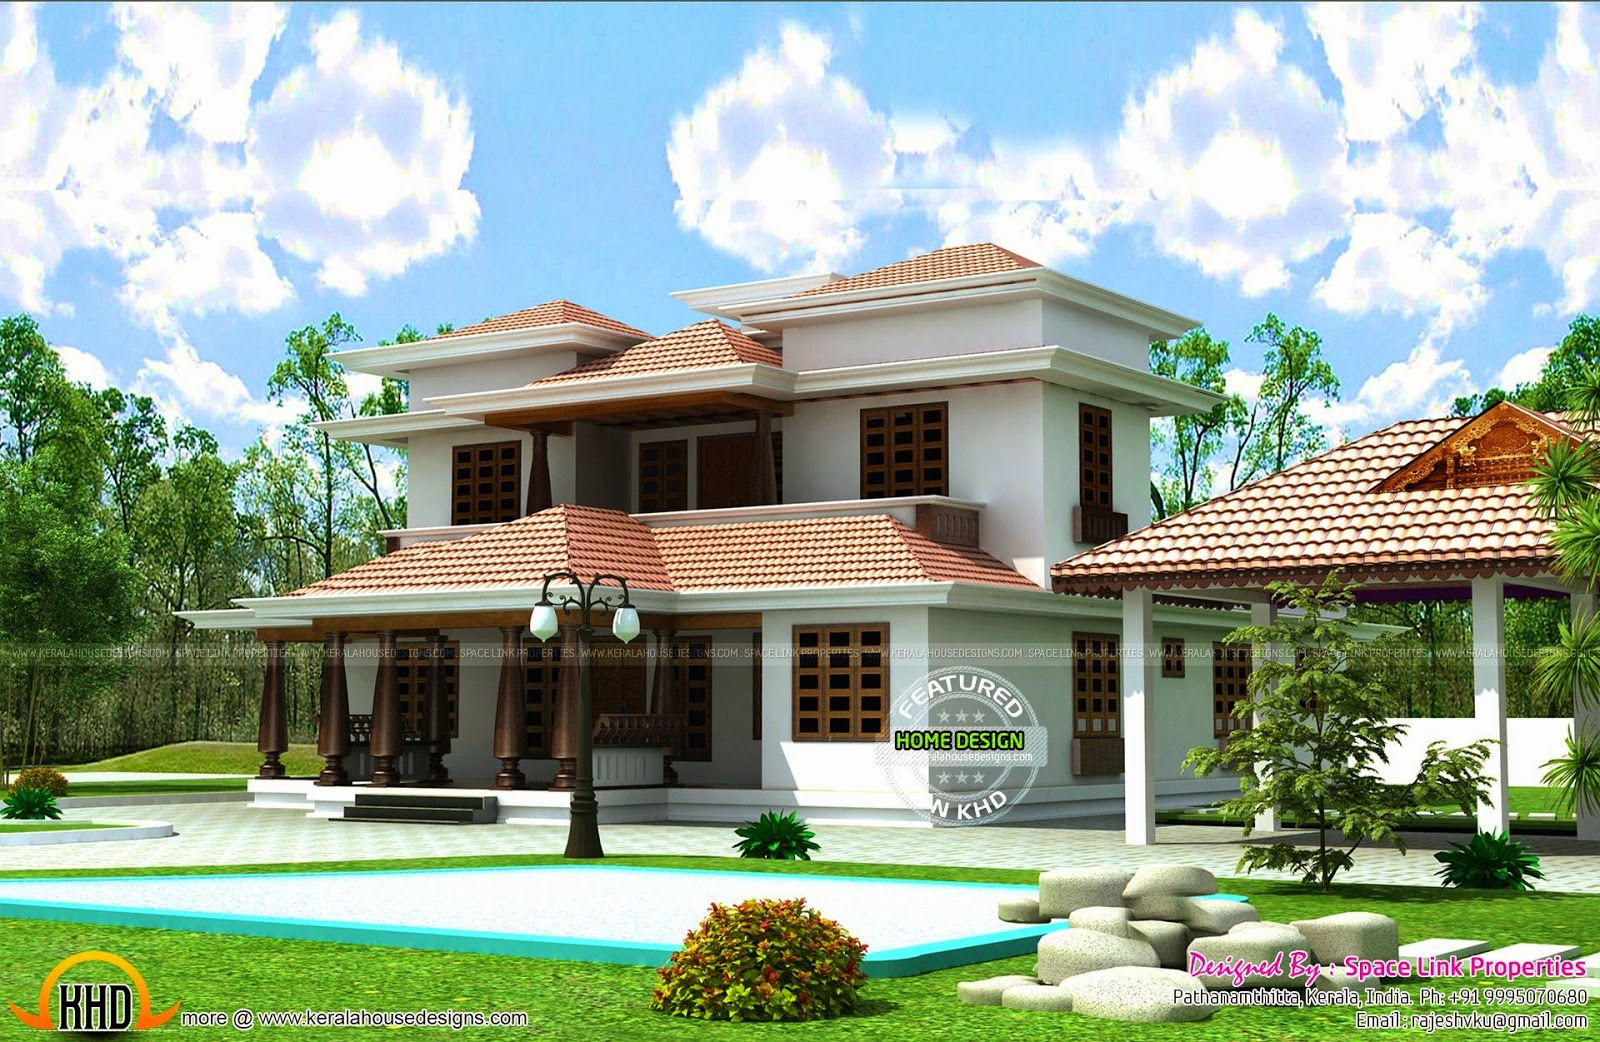 Typical kerala traditional house kerala home design and for Small traditional home plans